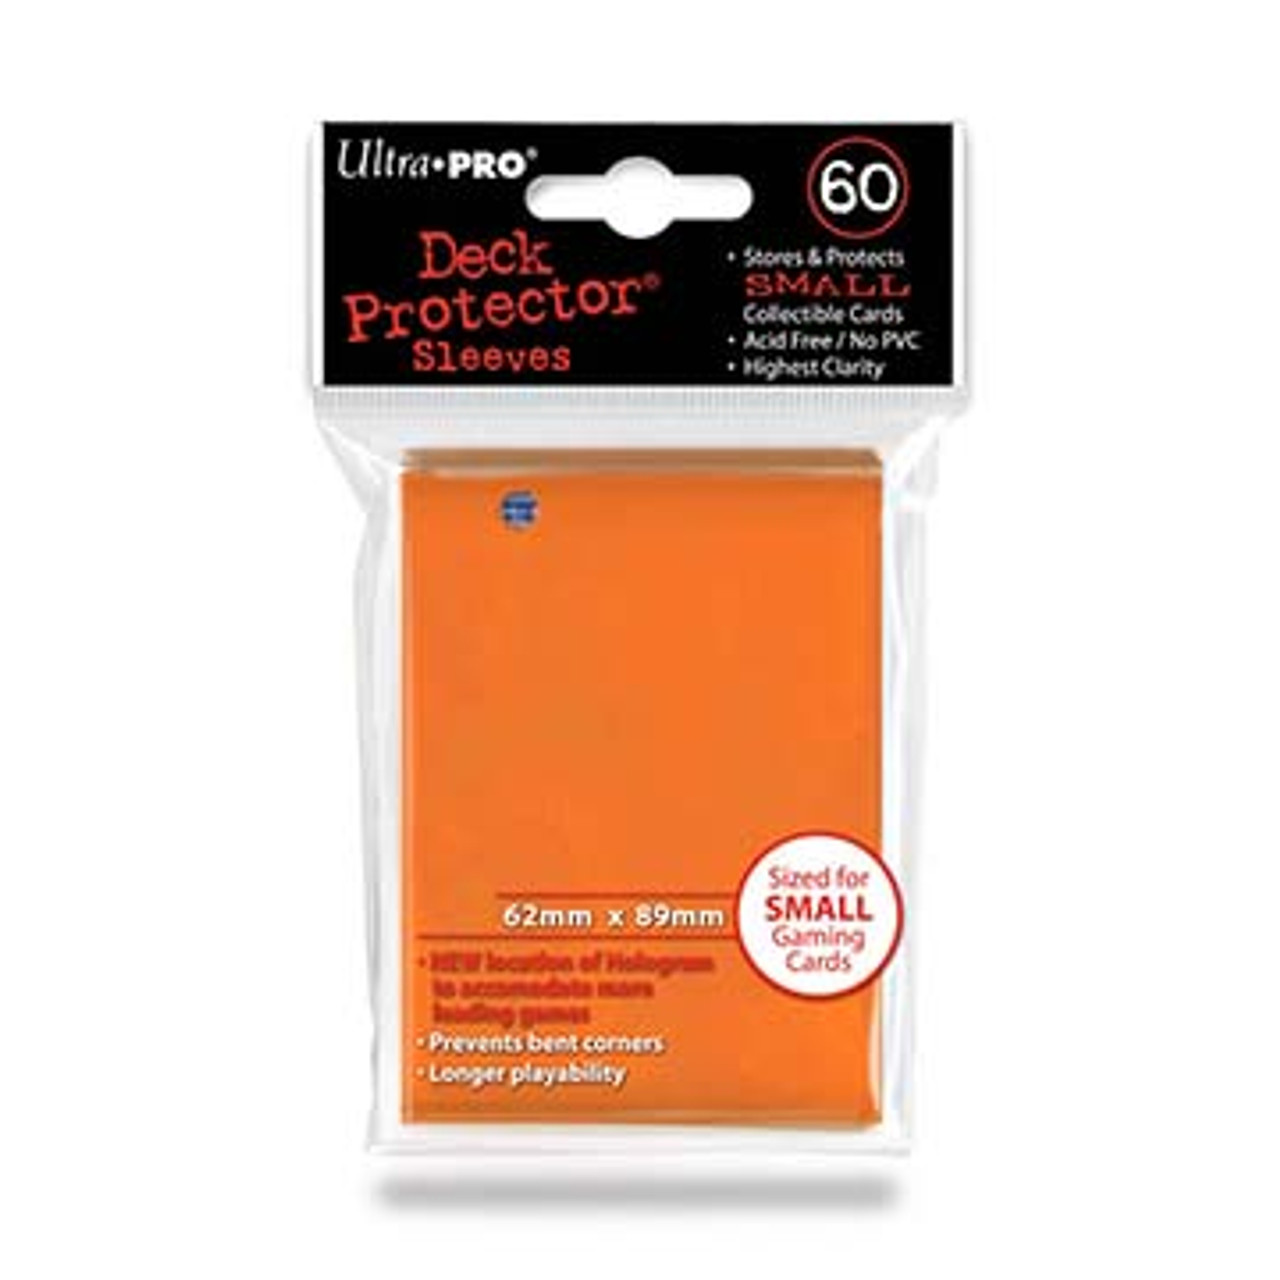 Deck Protectors - Small Size - Orange (One Pack of 60)